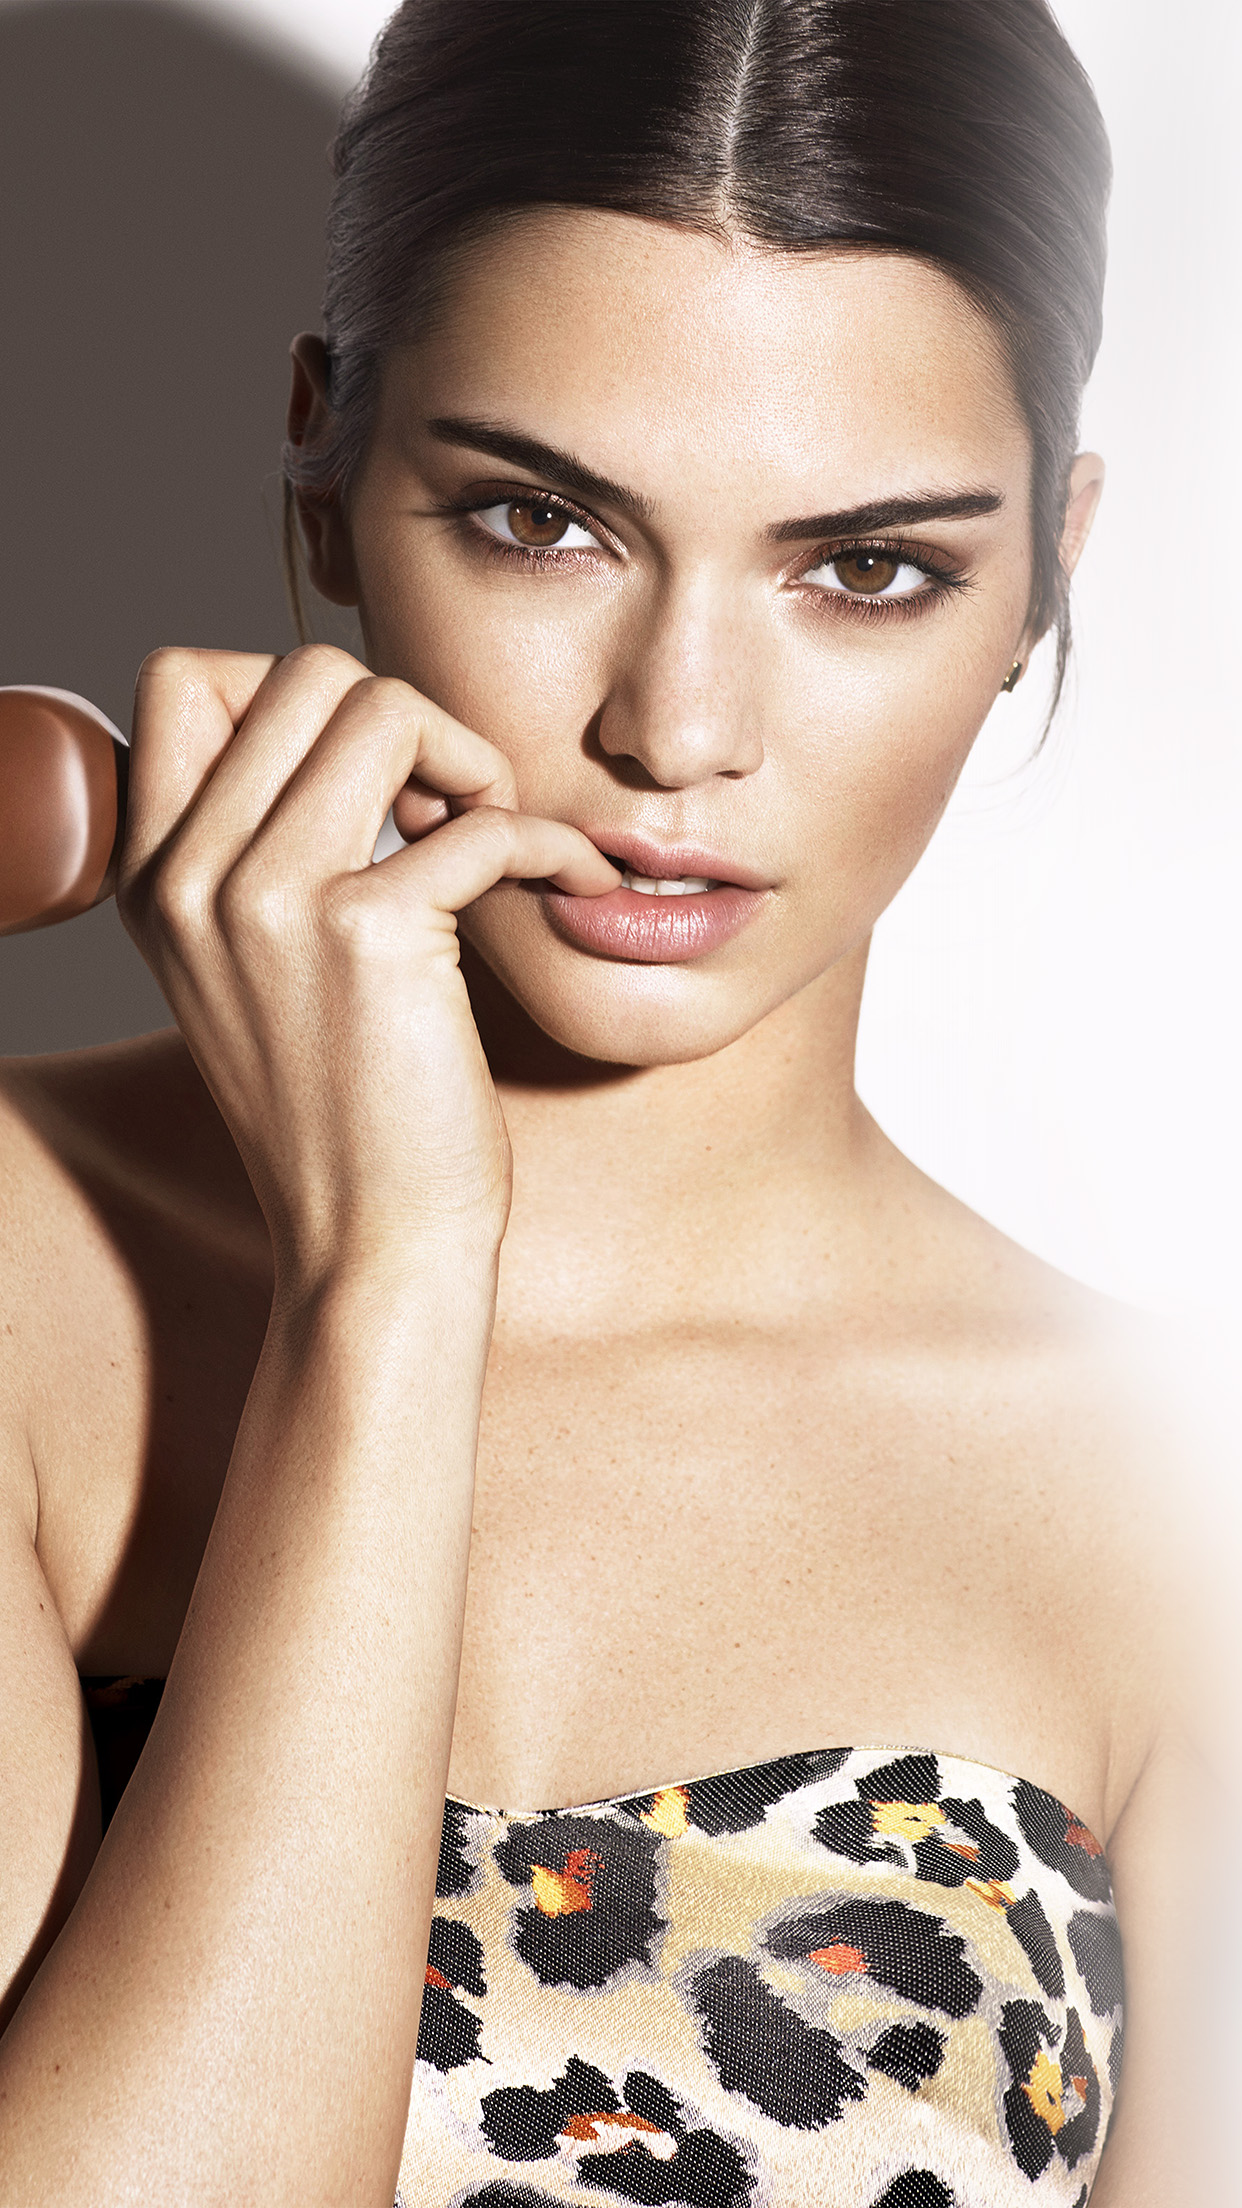 Kendall Jenner Magnum Ice Cream Model Android wallpaper